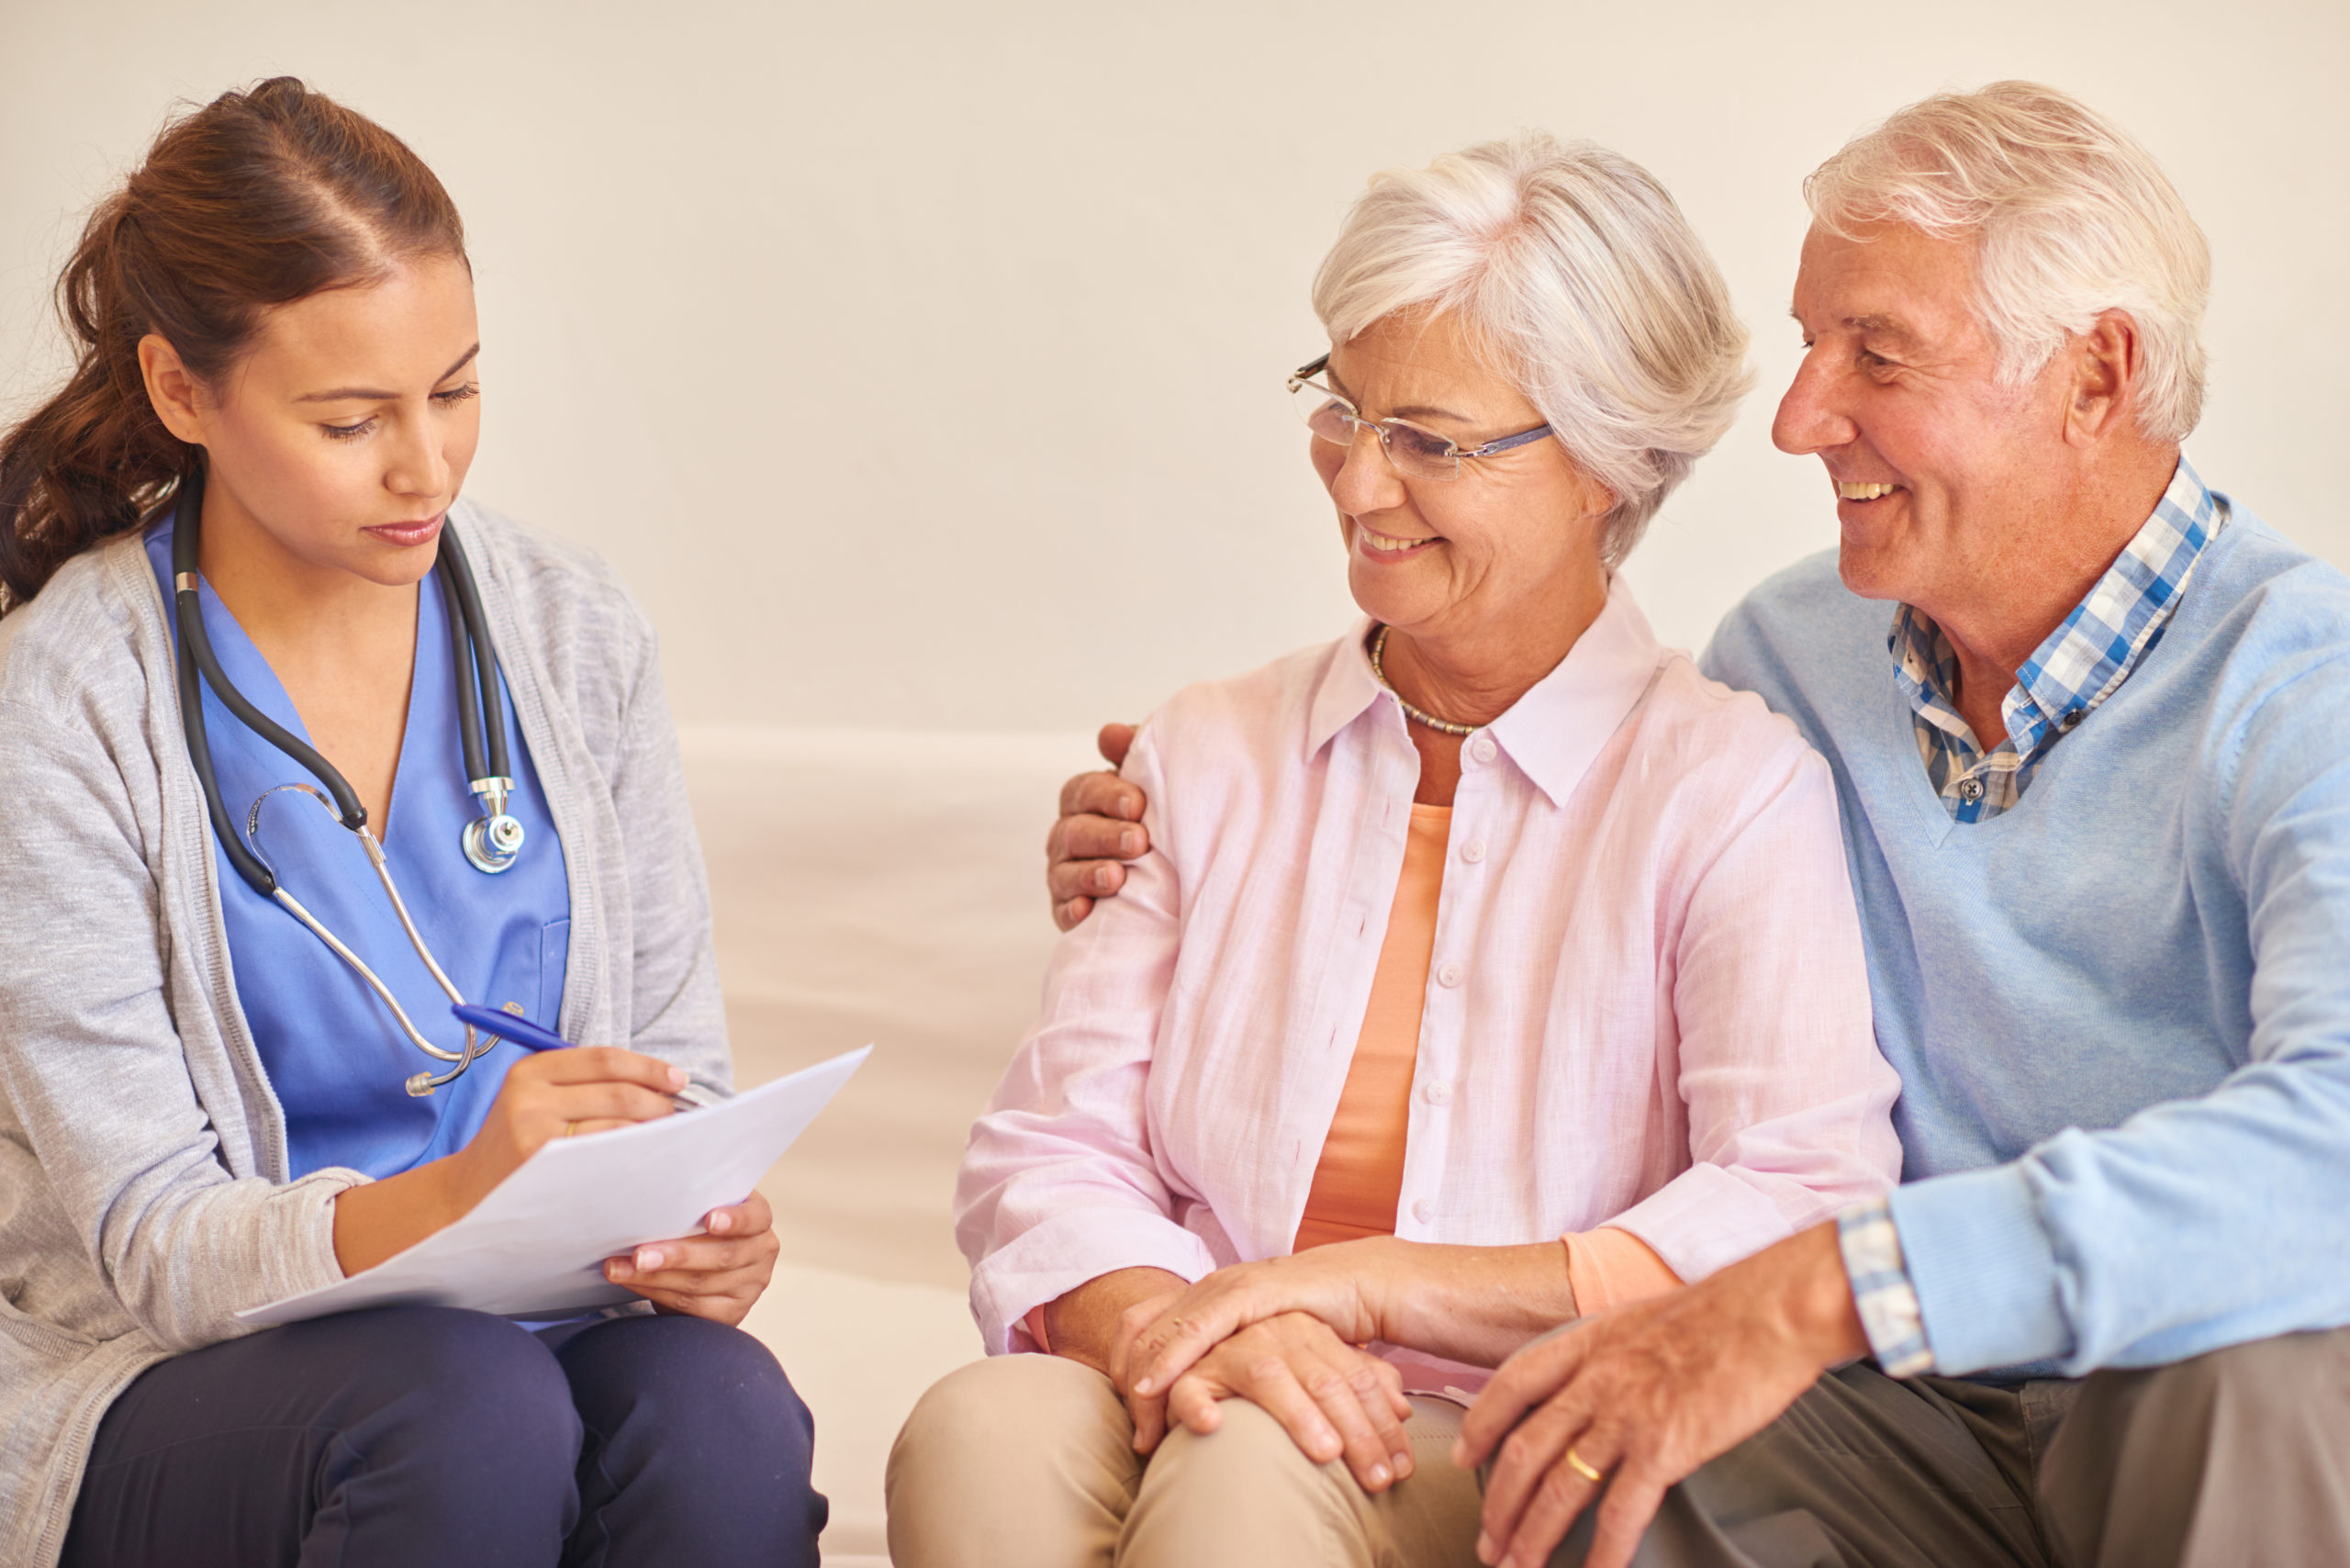 Shoot of smiling senior couple with their nurse during an appointment.